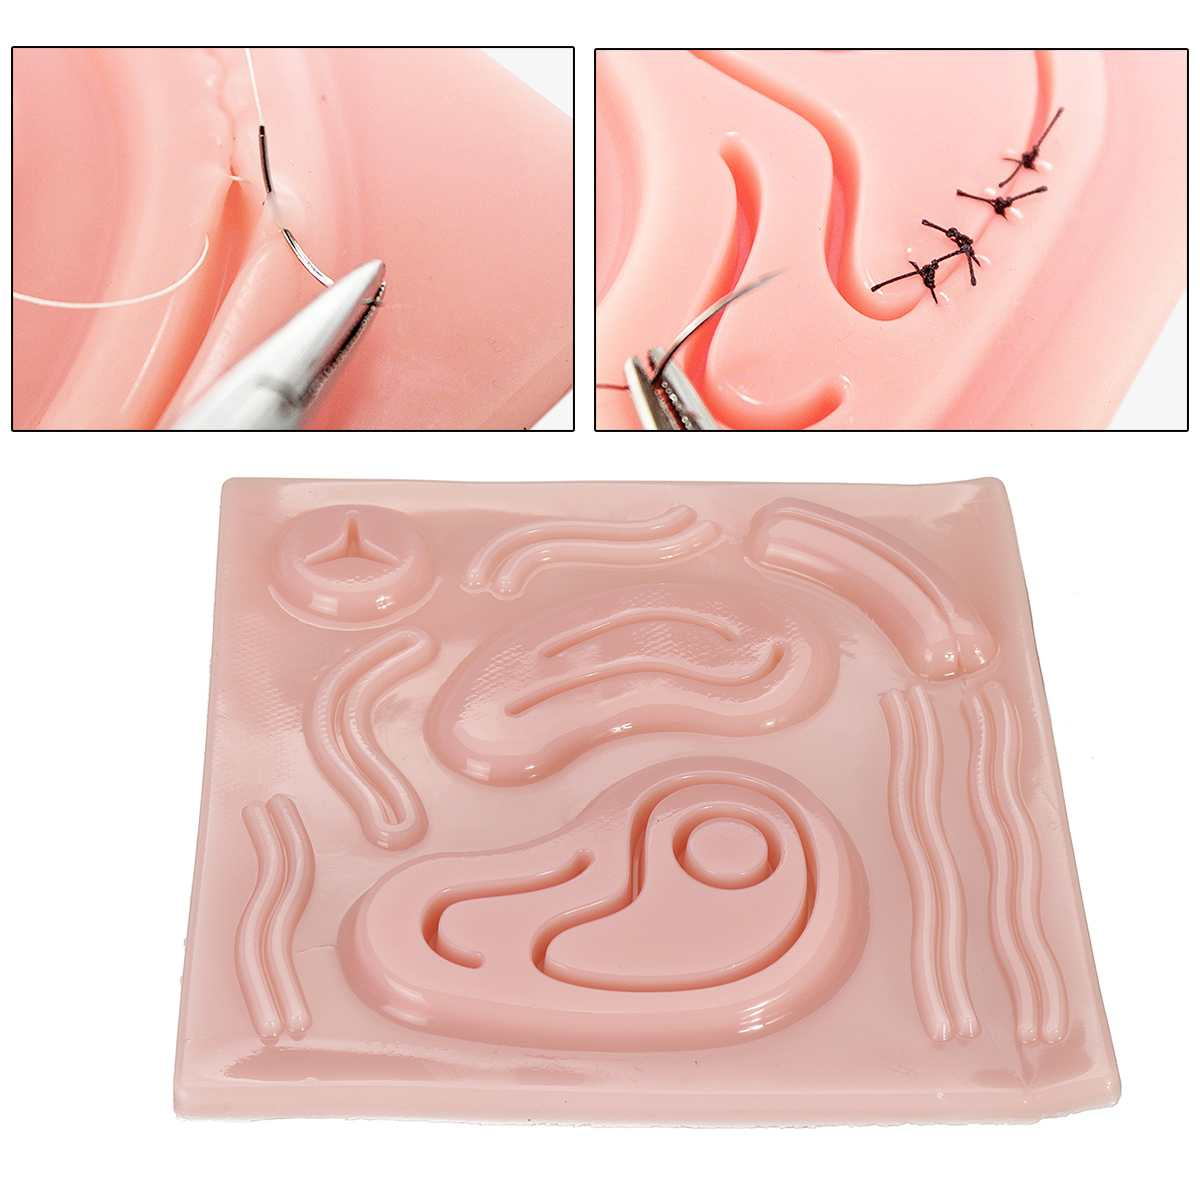 Laparoscopic Simulation 3D Silicone Stitching Module Surgical Training Skin Suture Pad Soft Lifelike For Teaching DemonstrationsLaparoscopic Simulation 3D Silicone Stitching Module Surgical Training Skin Suture Pad Soft Lifelike For Teaching Demonstrations